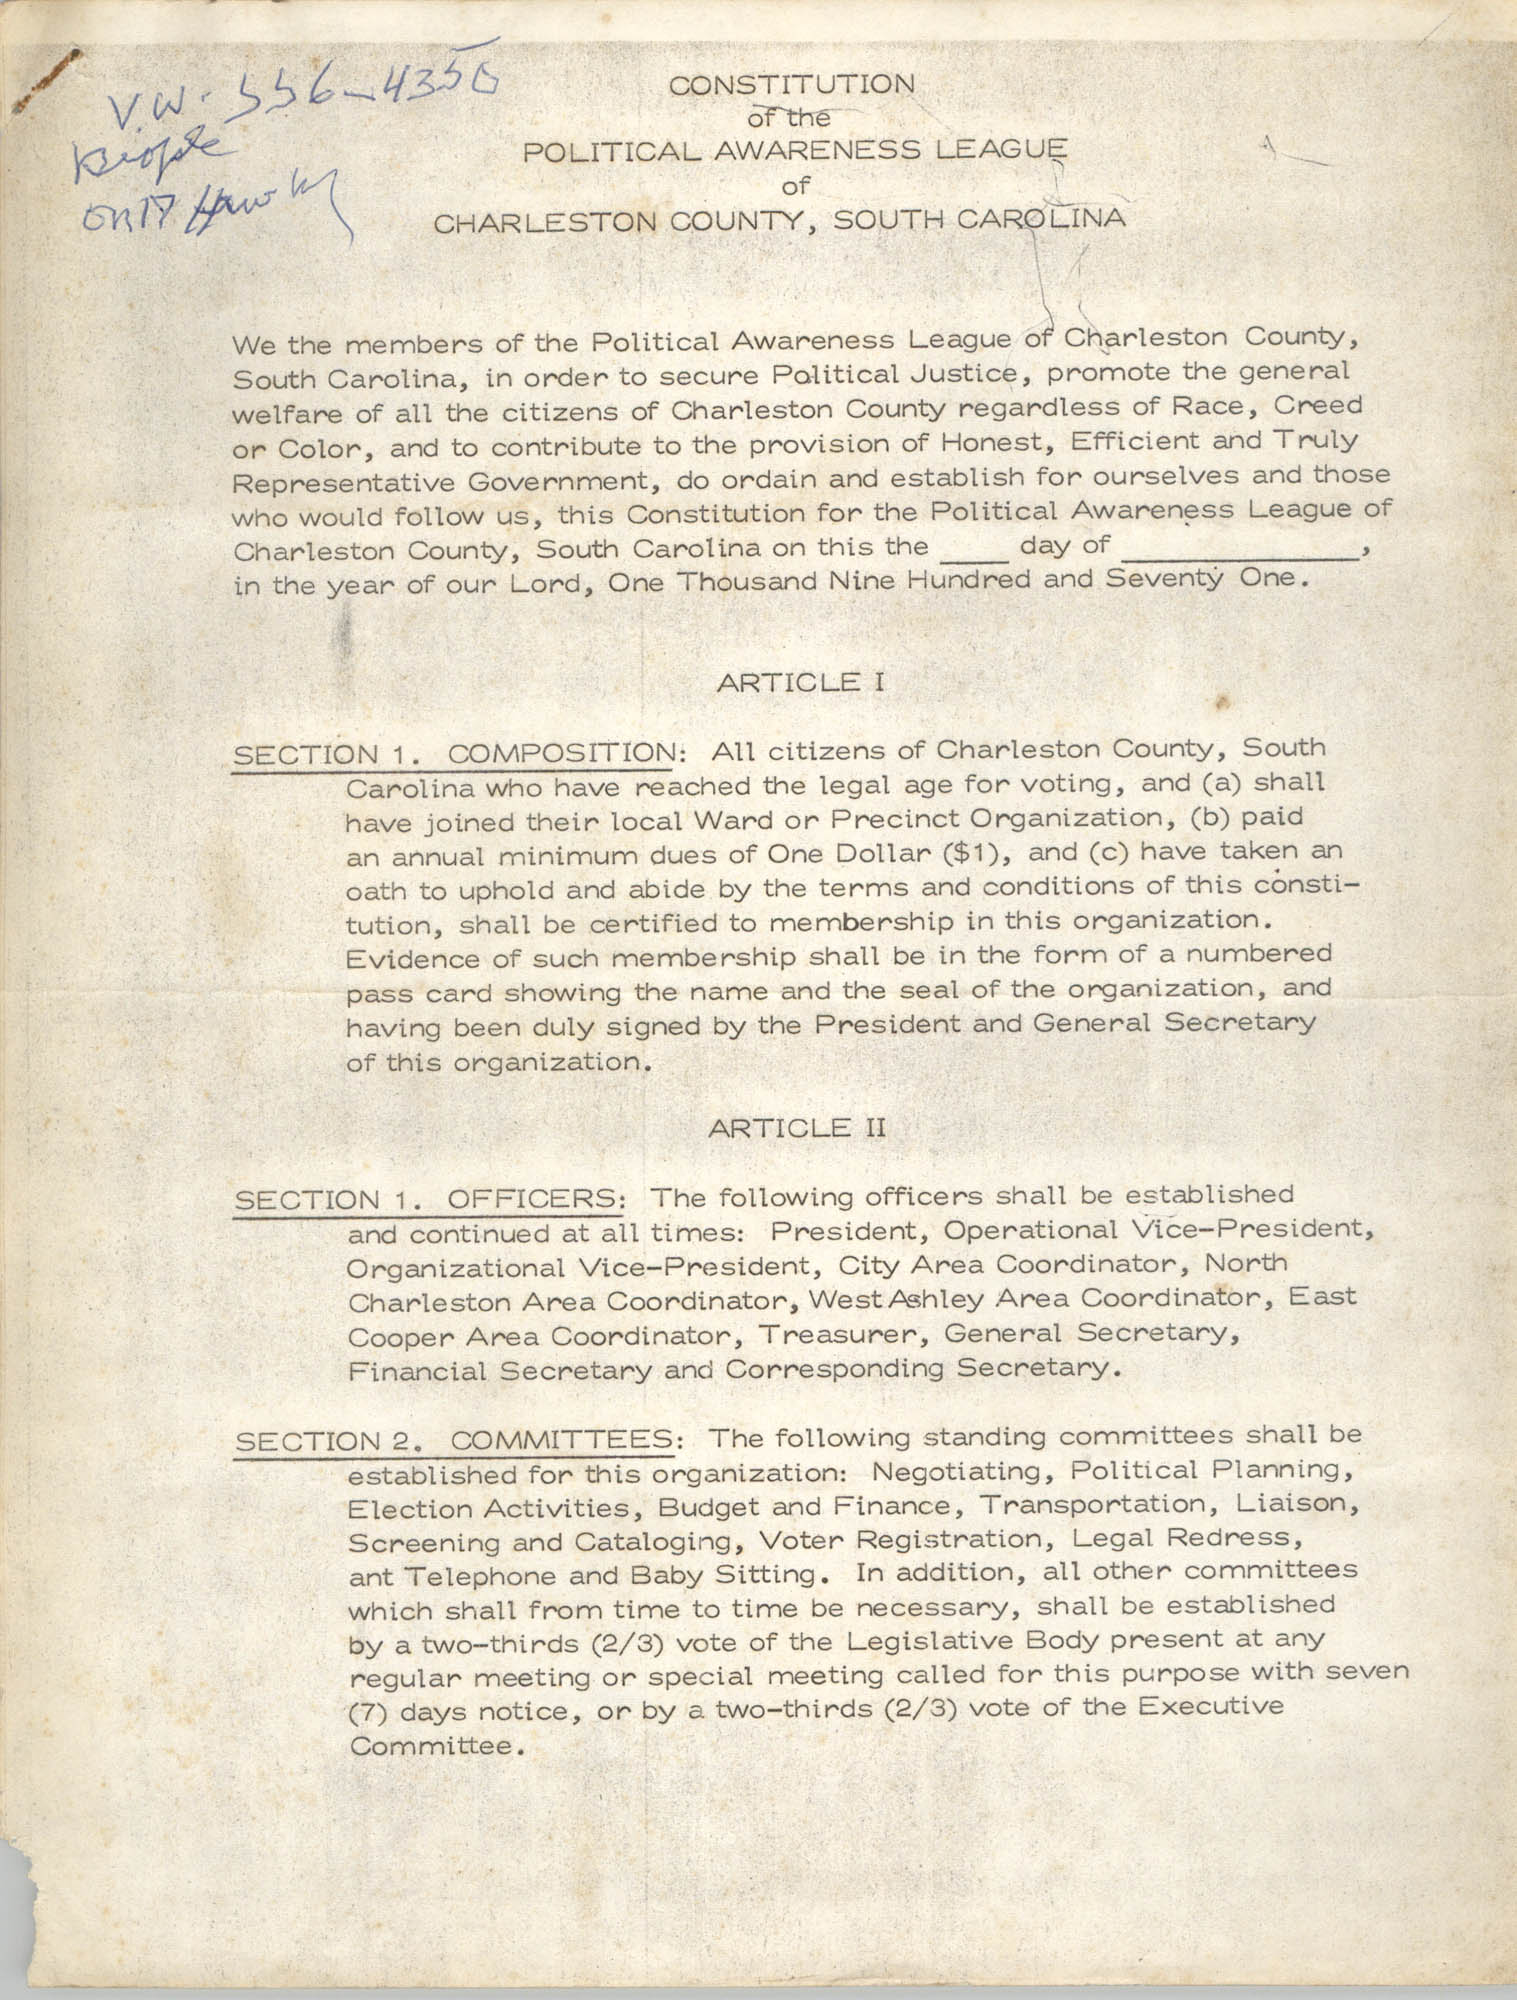 Constitution of the Political Awareness League of Charleston County, South Carolina, Page 1